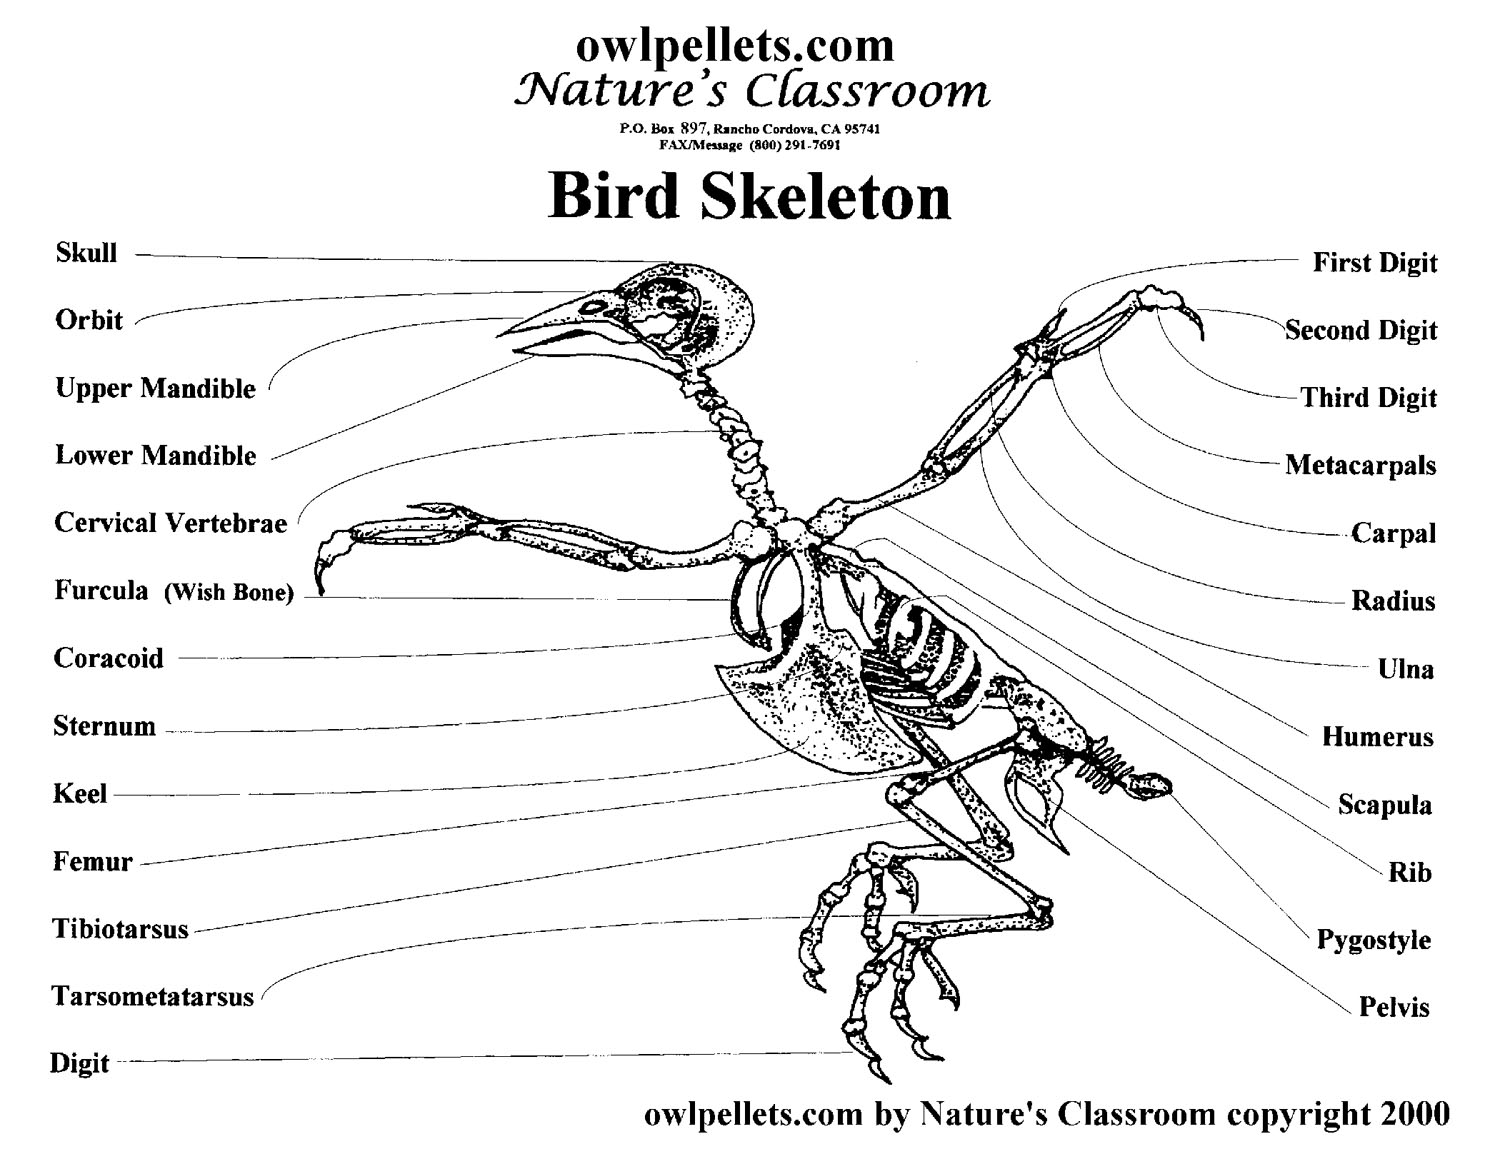 Bird skeleton anatomical structure